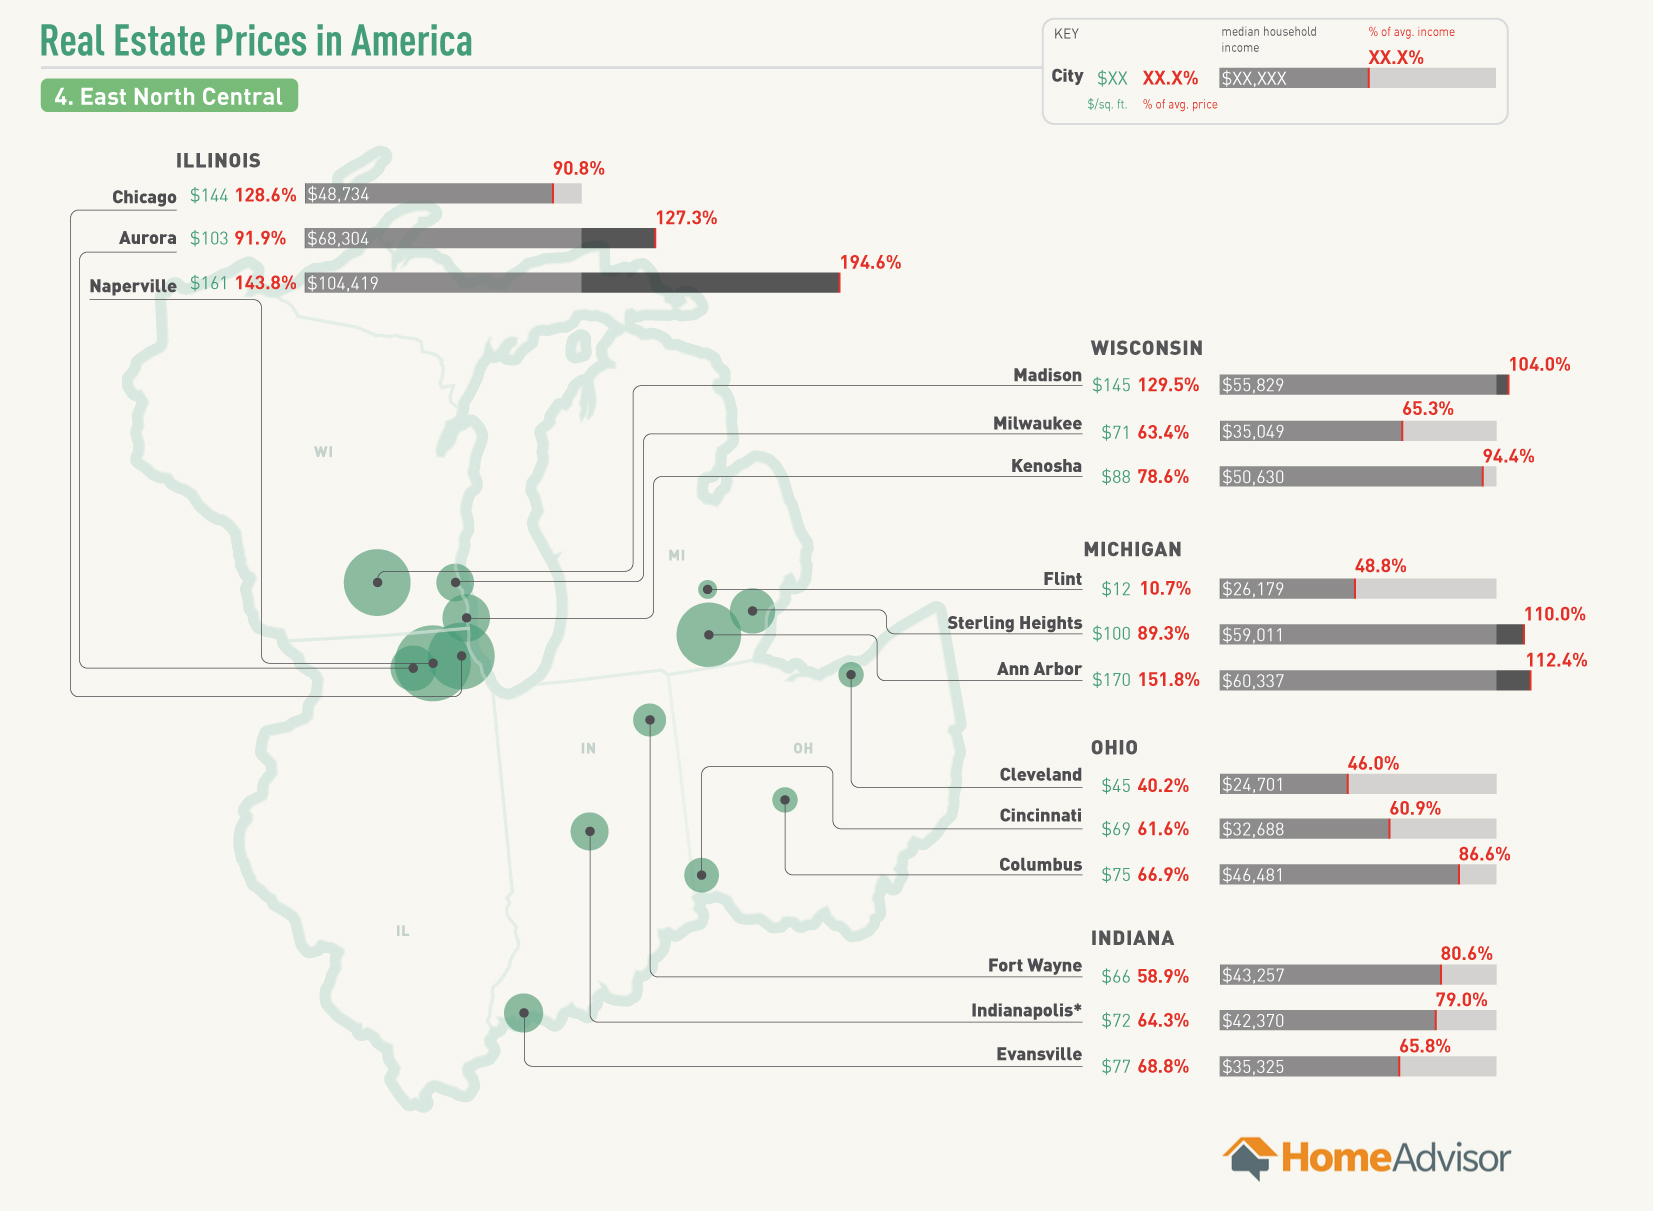 Real Estate Affordability in the East North Central